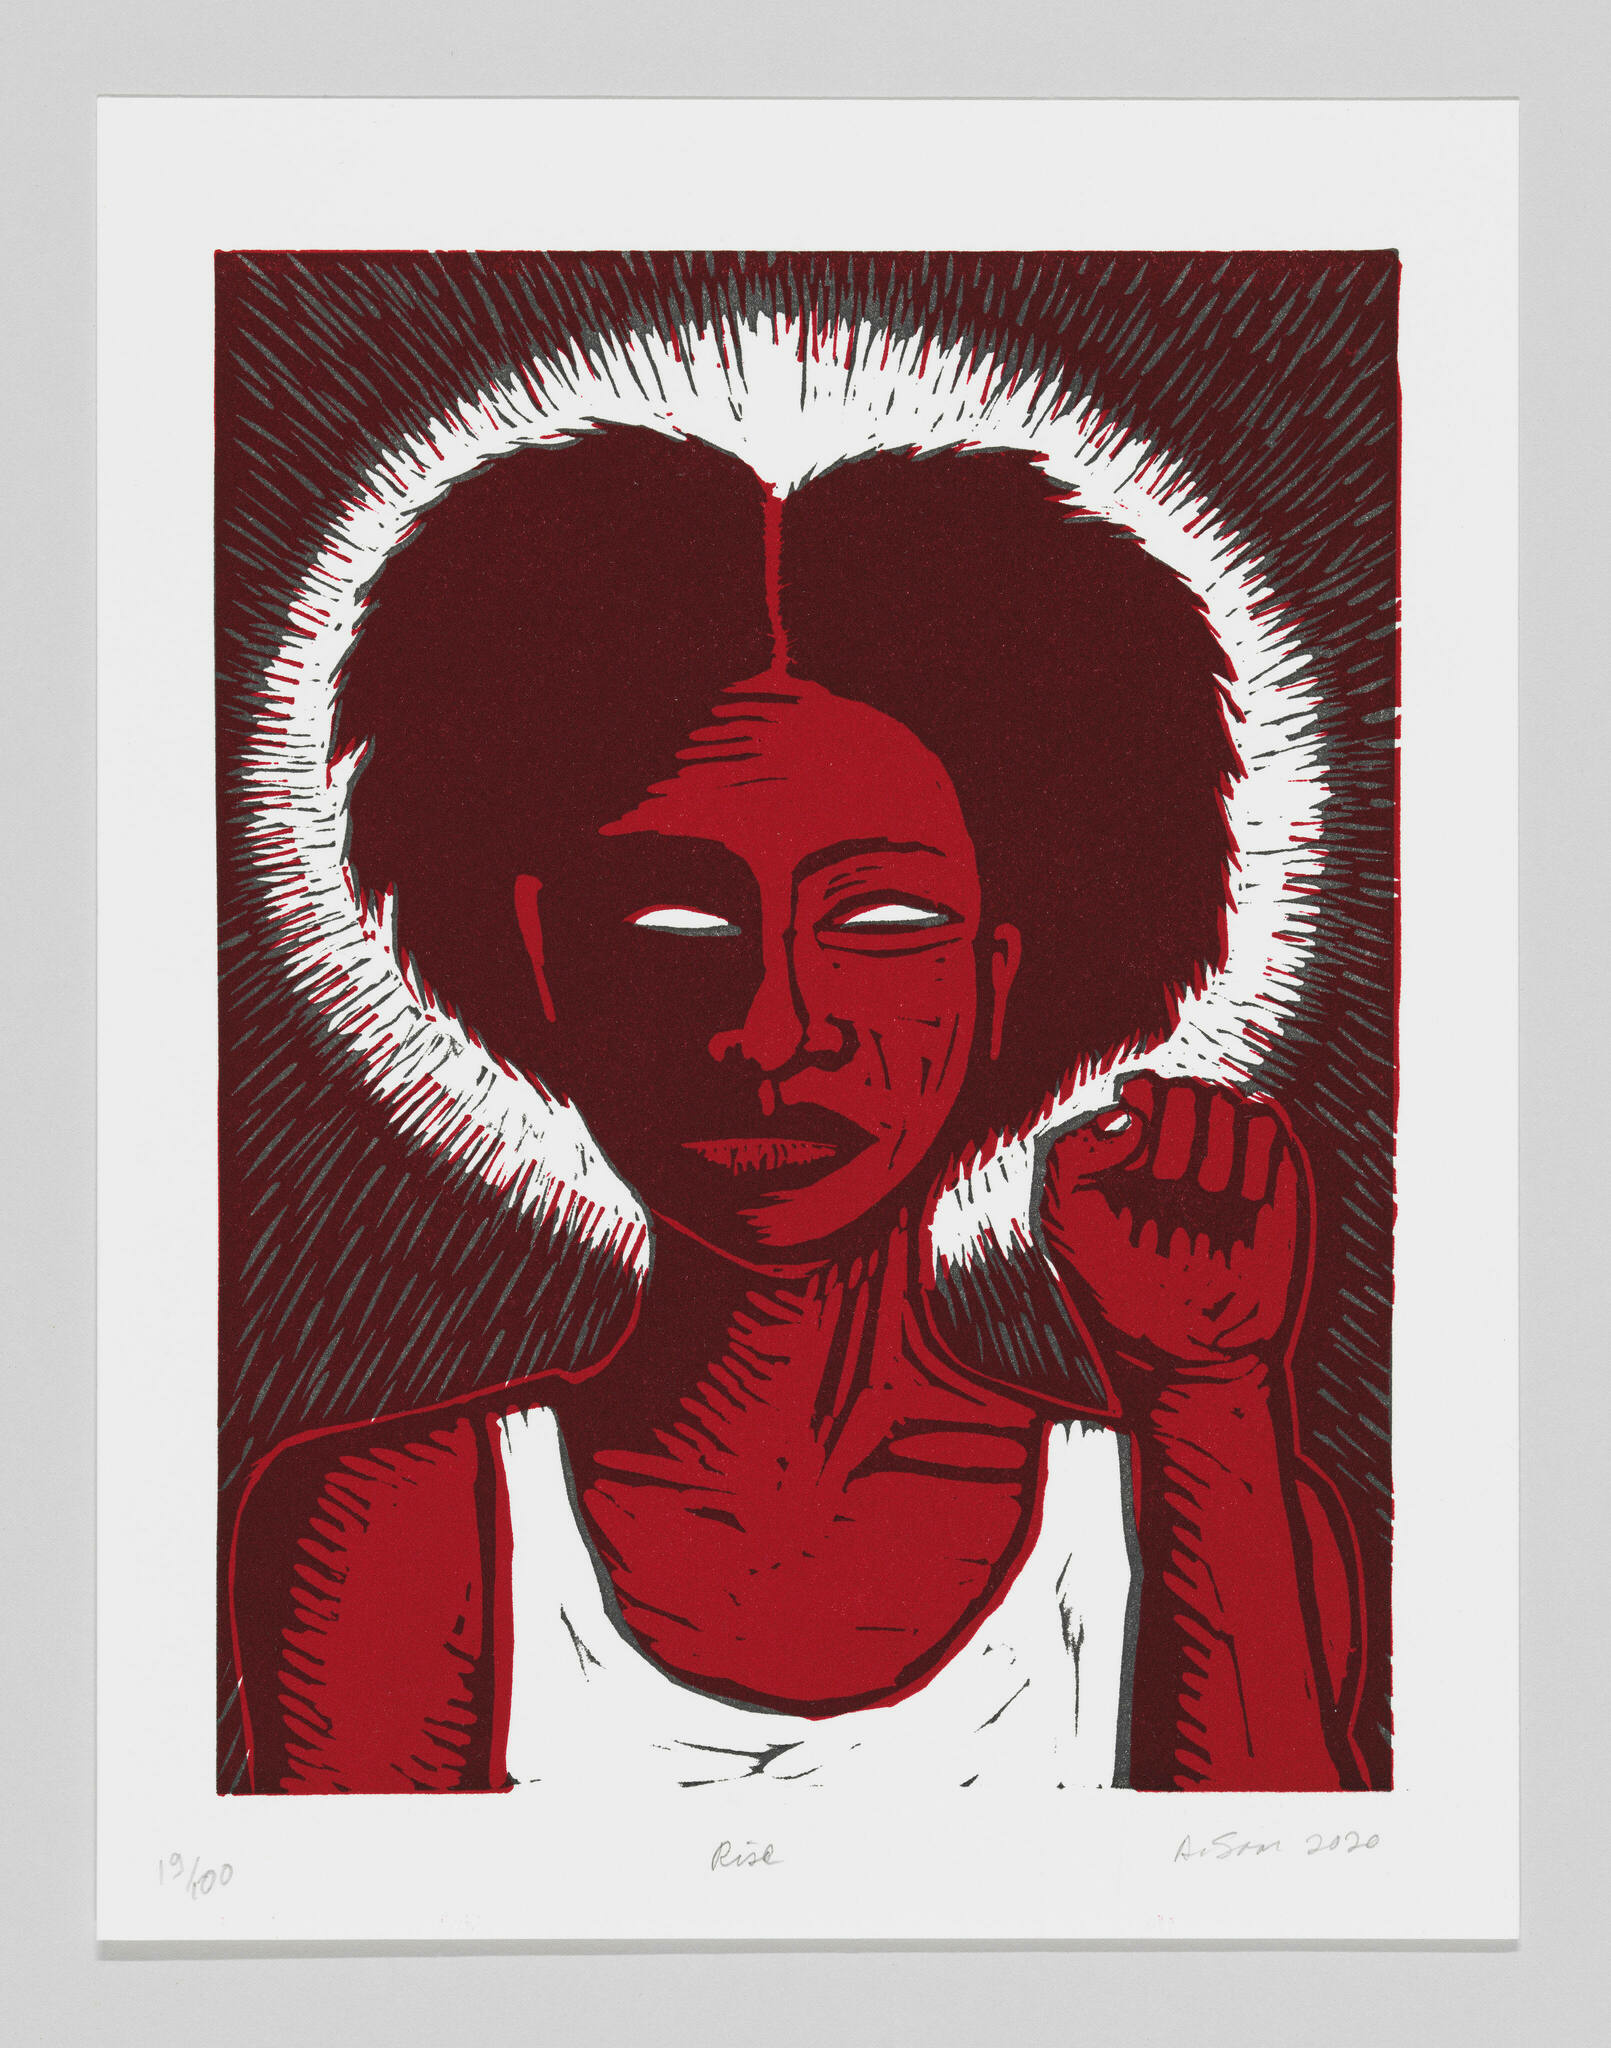 A monochrome red print of a black woman with her left fist up and a white halo.